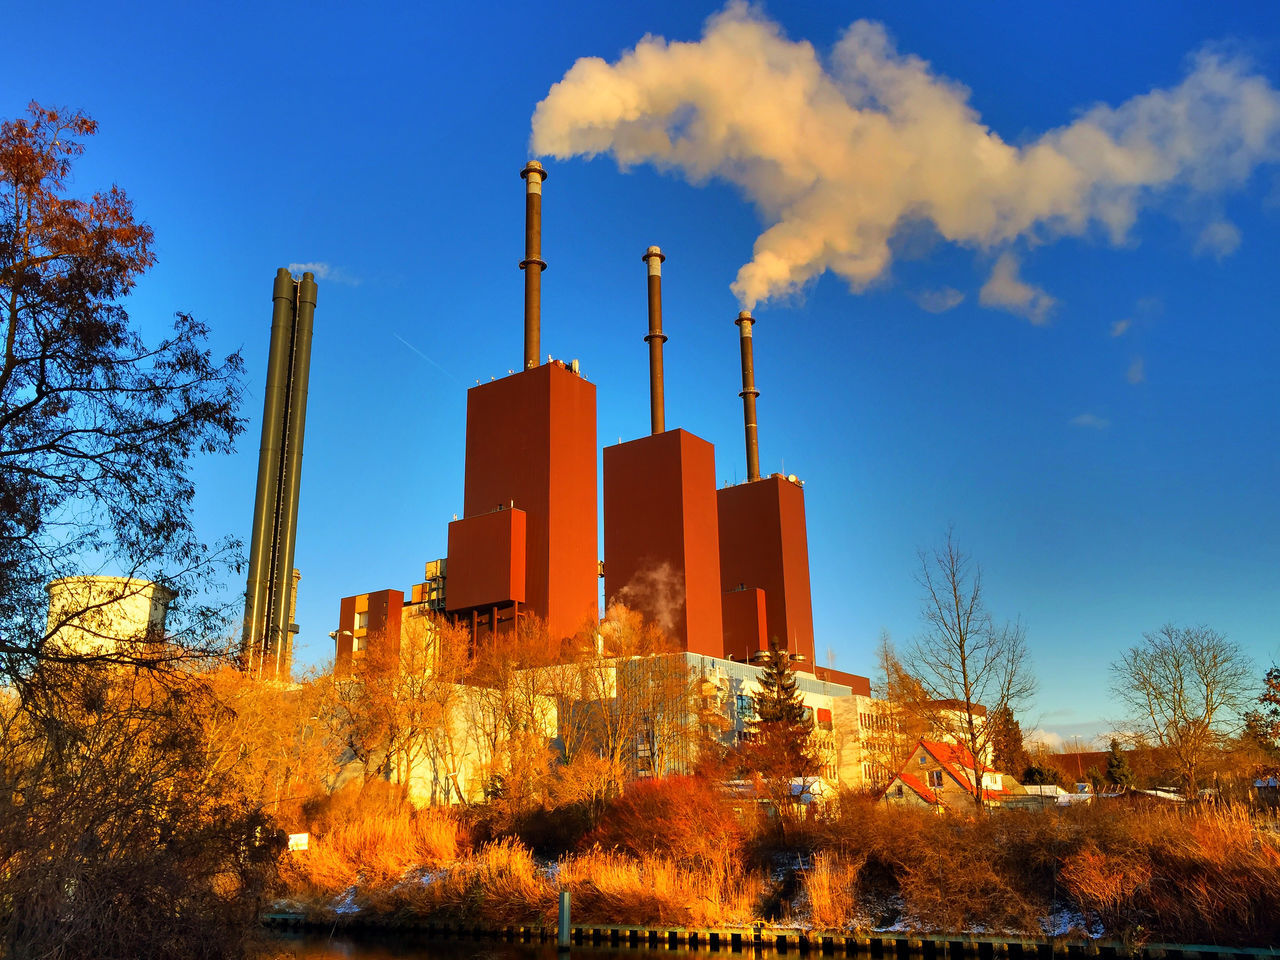 built structure, architecture, building exterior, smoke stack, tree, industry, sky, low angle view, factory, no people, outdoors, bare tree, blue, day, chimney, clear sky